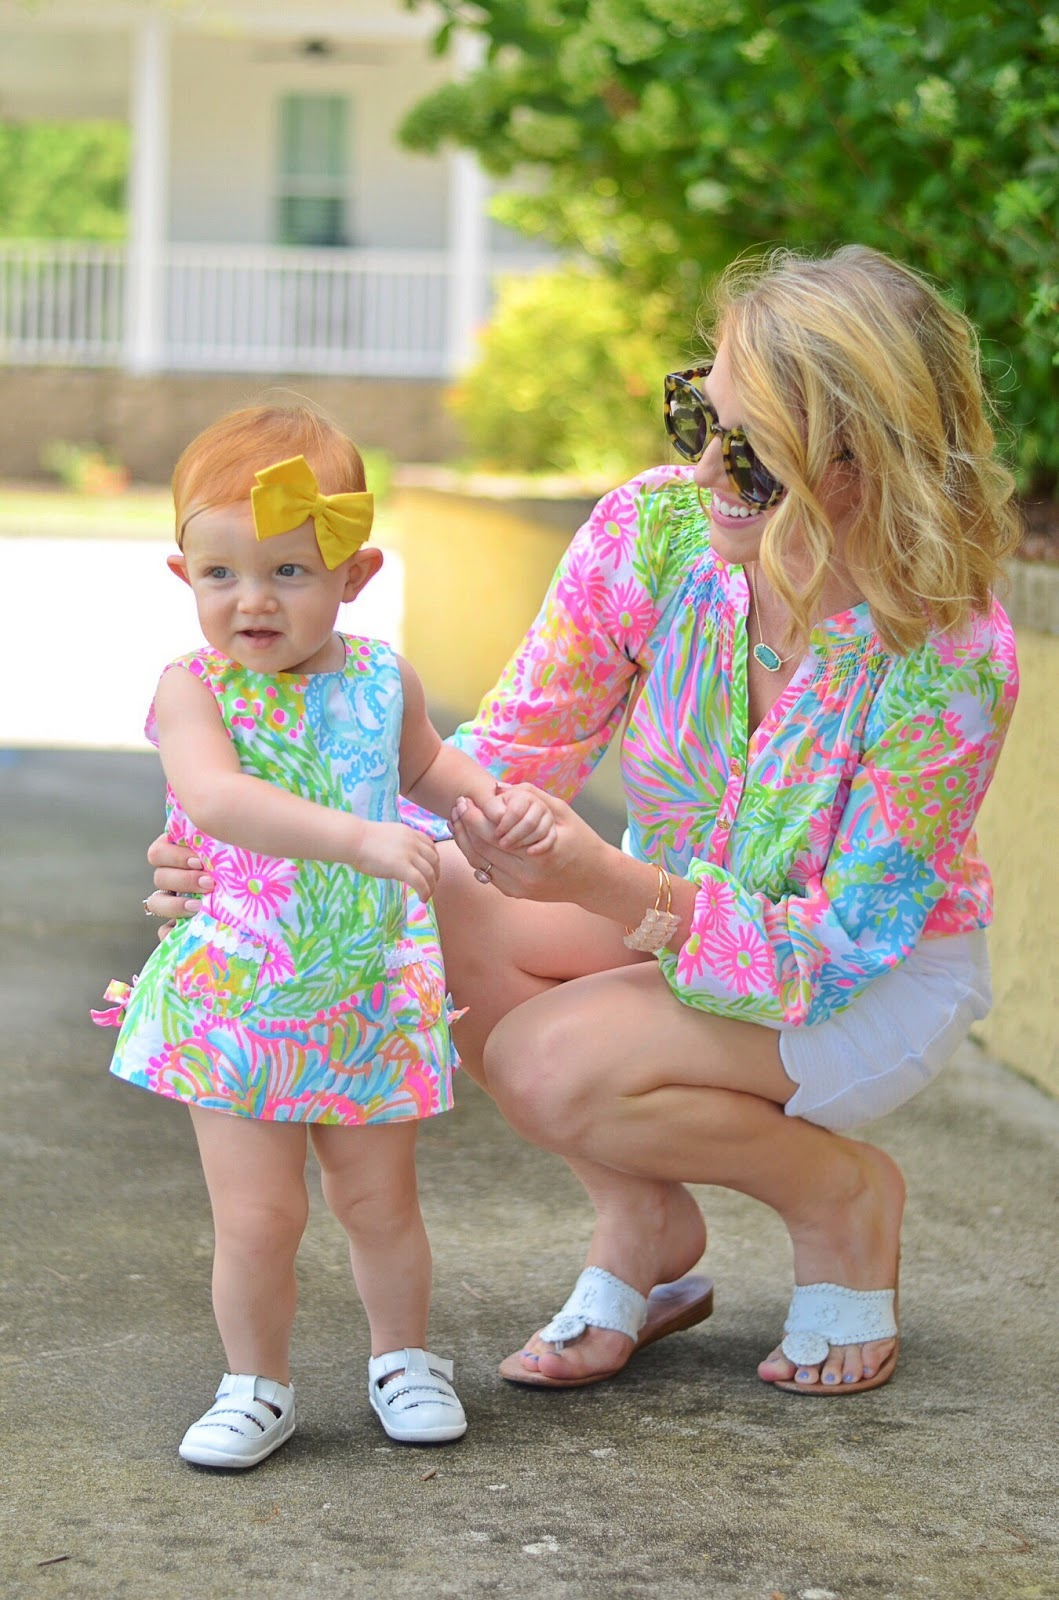 Matching In Lilly Pulitzer - Something Delightful Blog